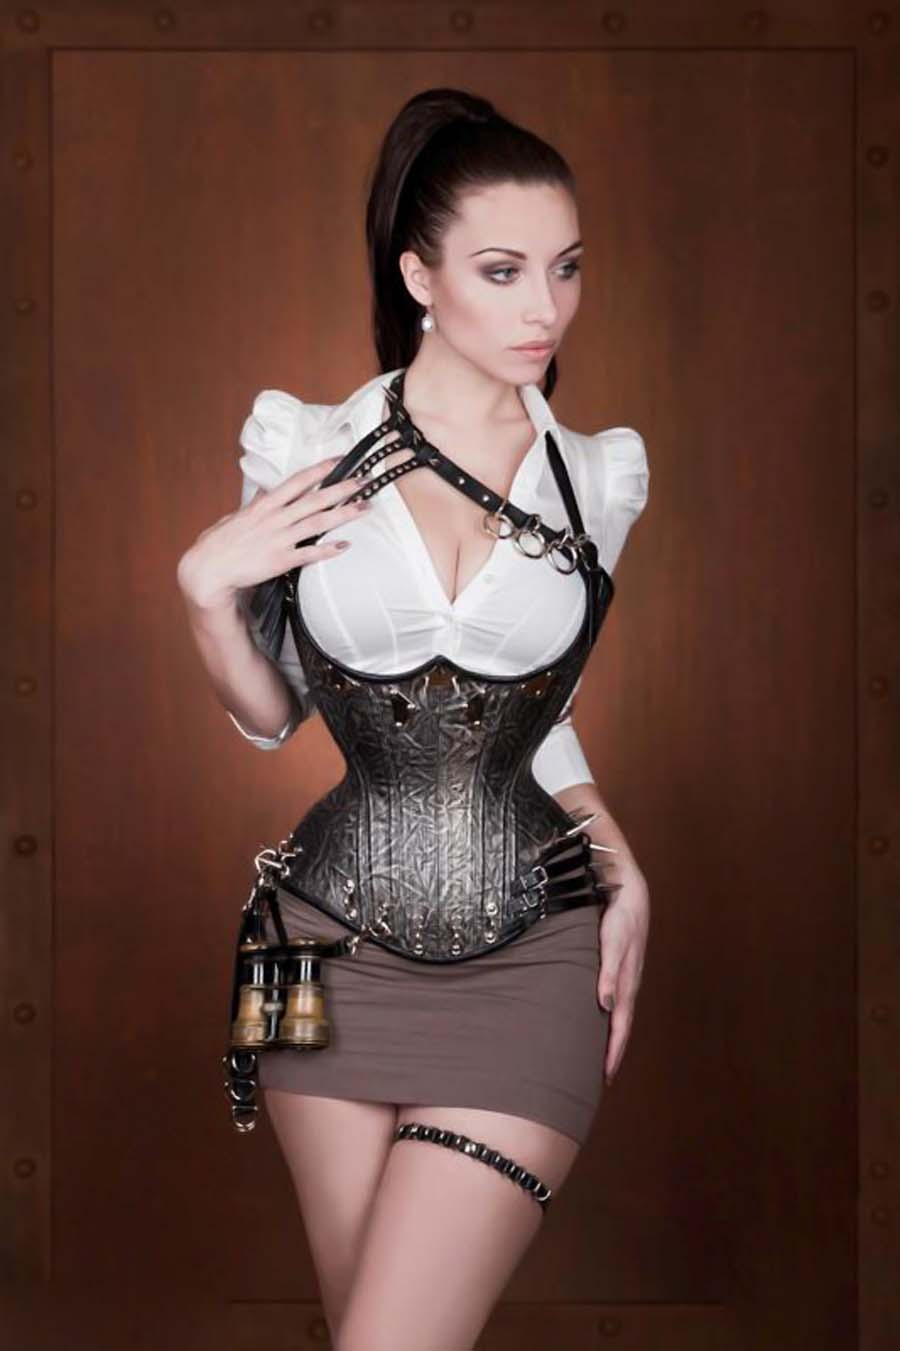 Can recommend girls in leather corsets